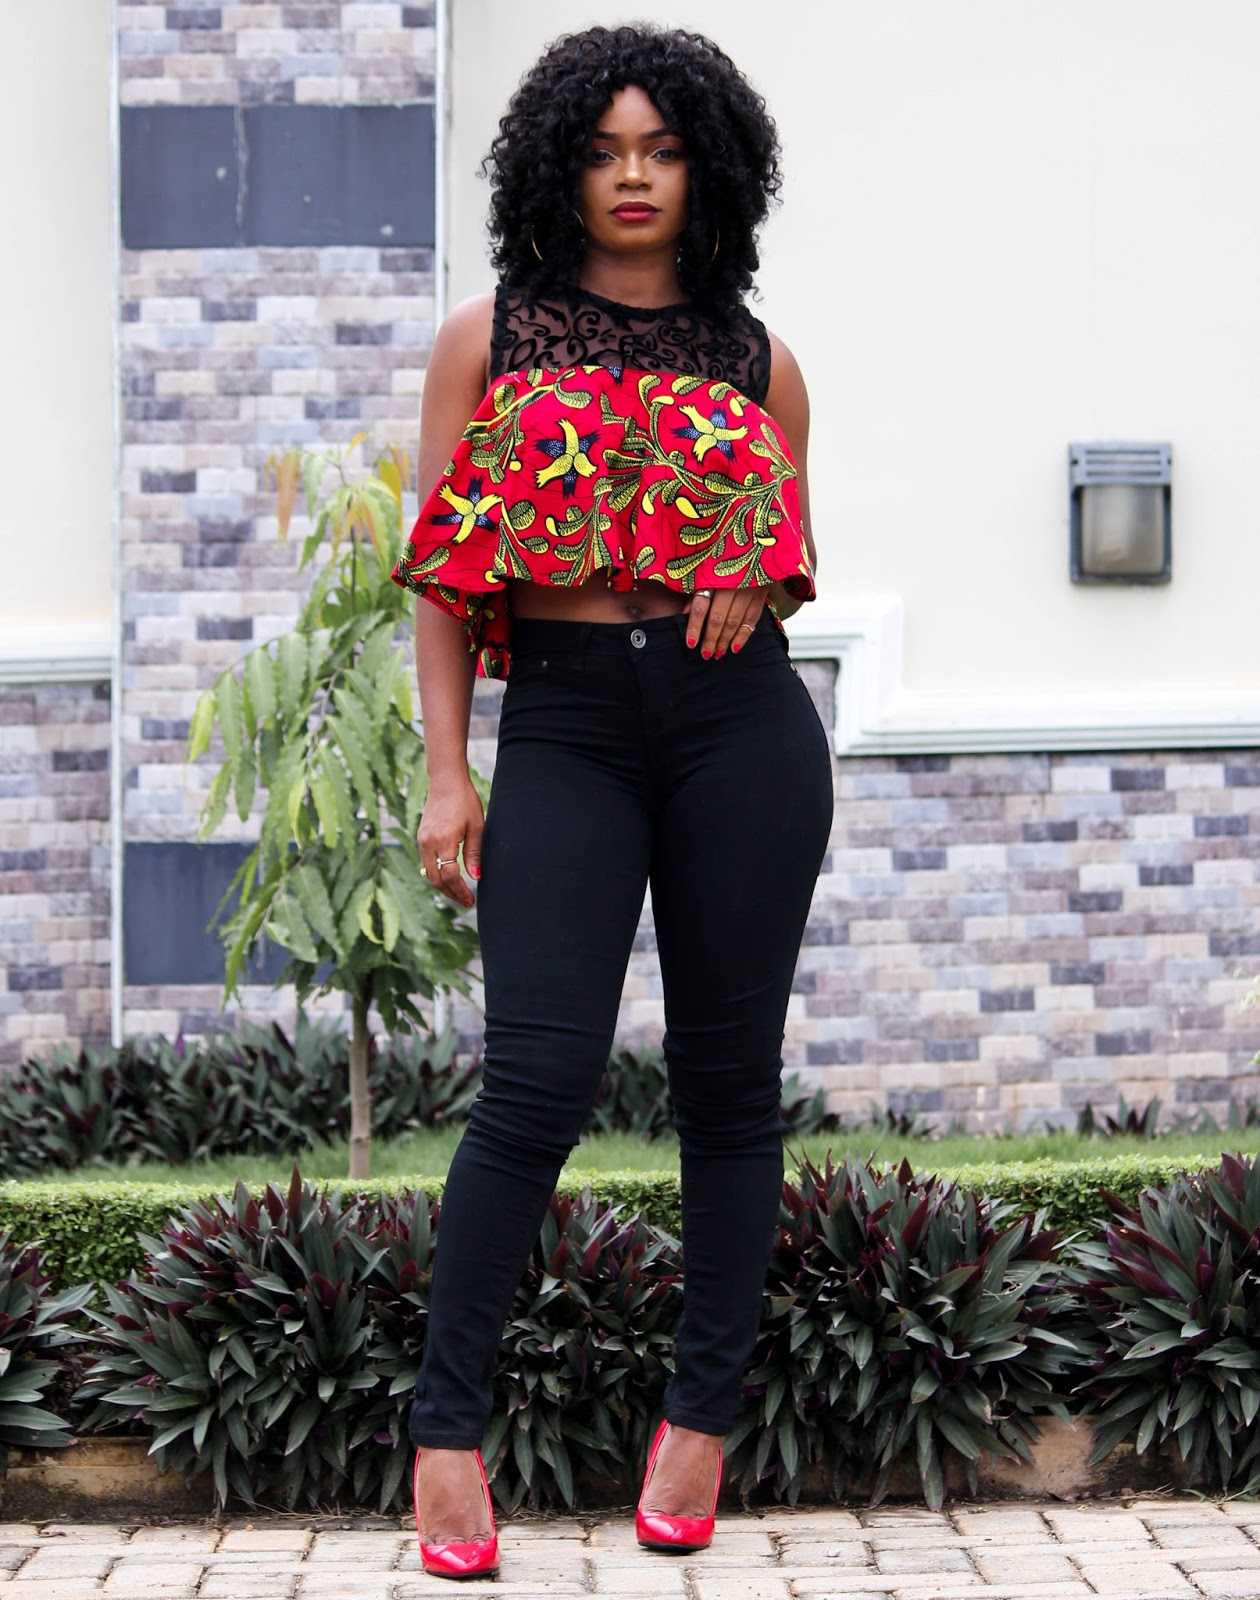 ANKARA FLARED TOP - African Print Flared Top from HouseofNessa with Black Jeans and Red Shoes